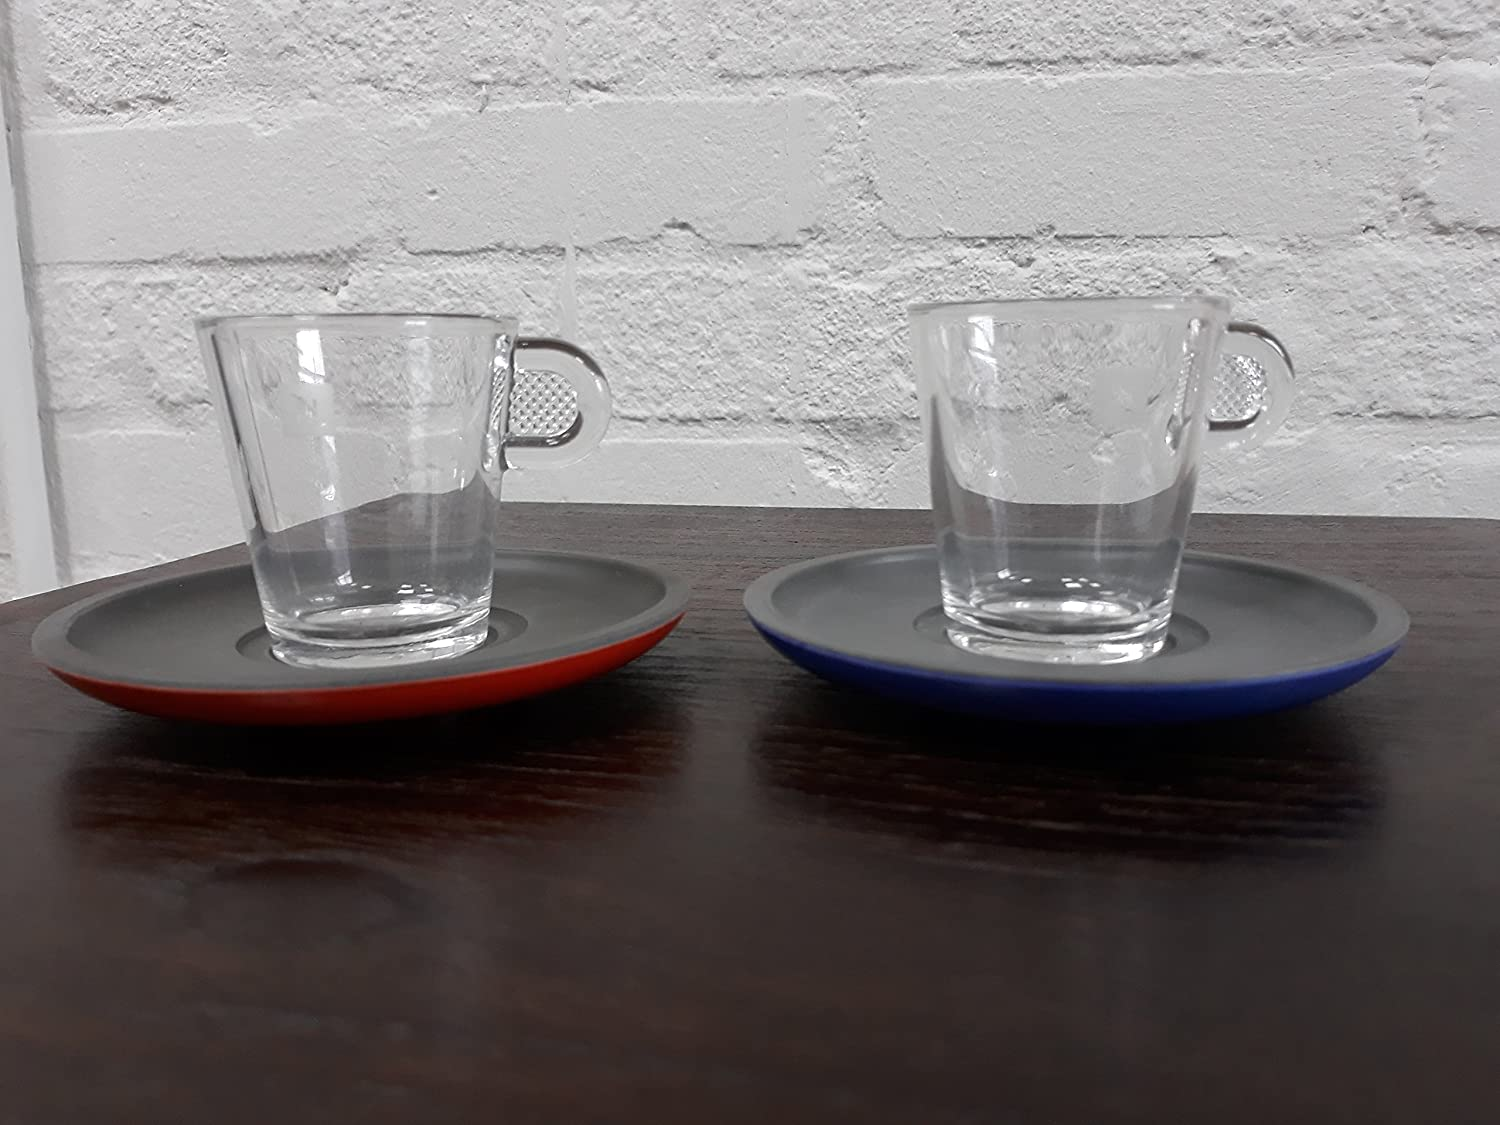 Nespresso View Collection: Set of 2 espresso glass cups and